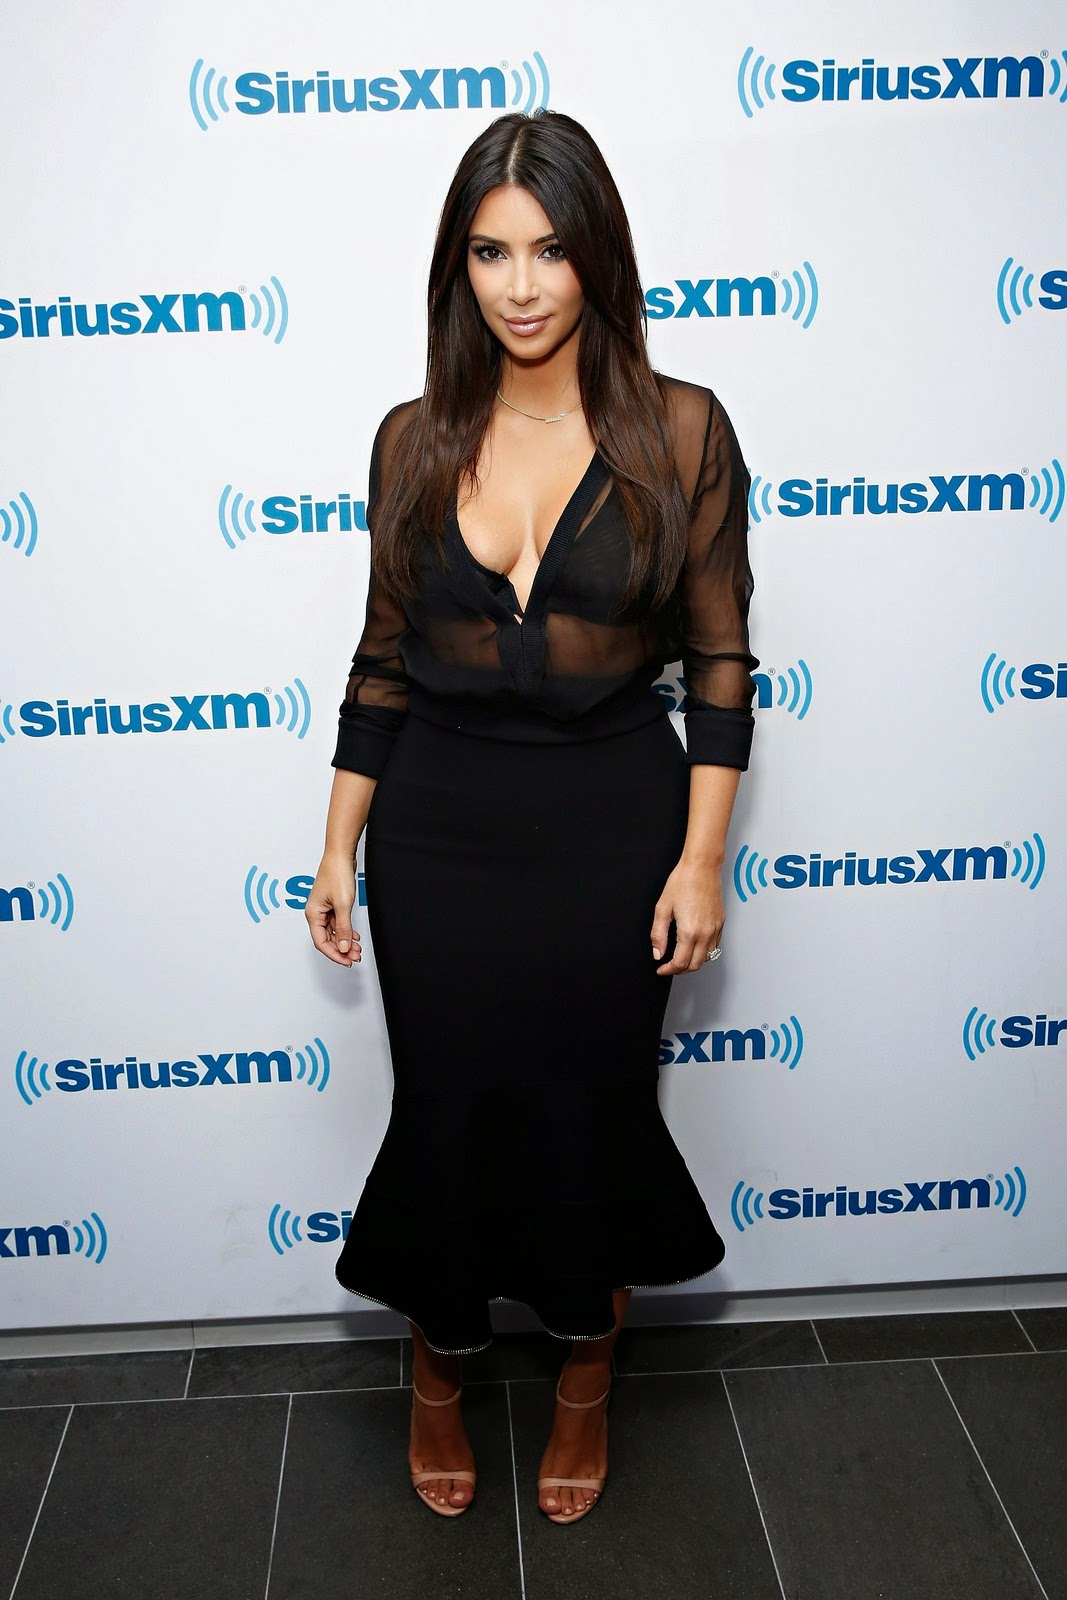 Kim In Givenchy While In NYC For Sirius XM Radio Interview